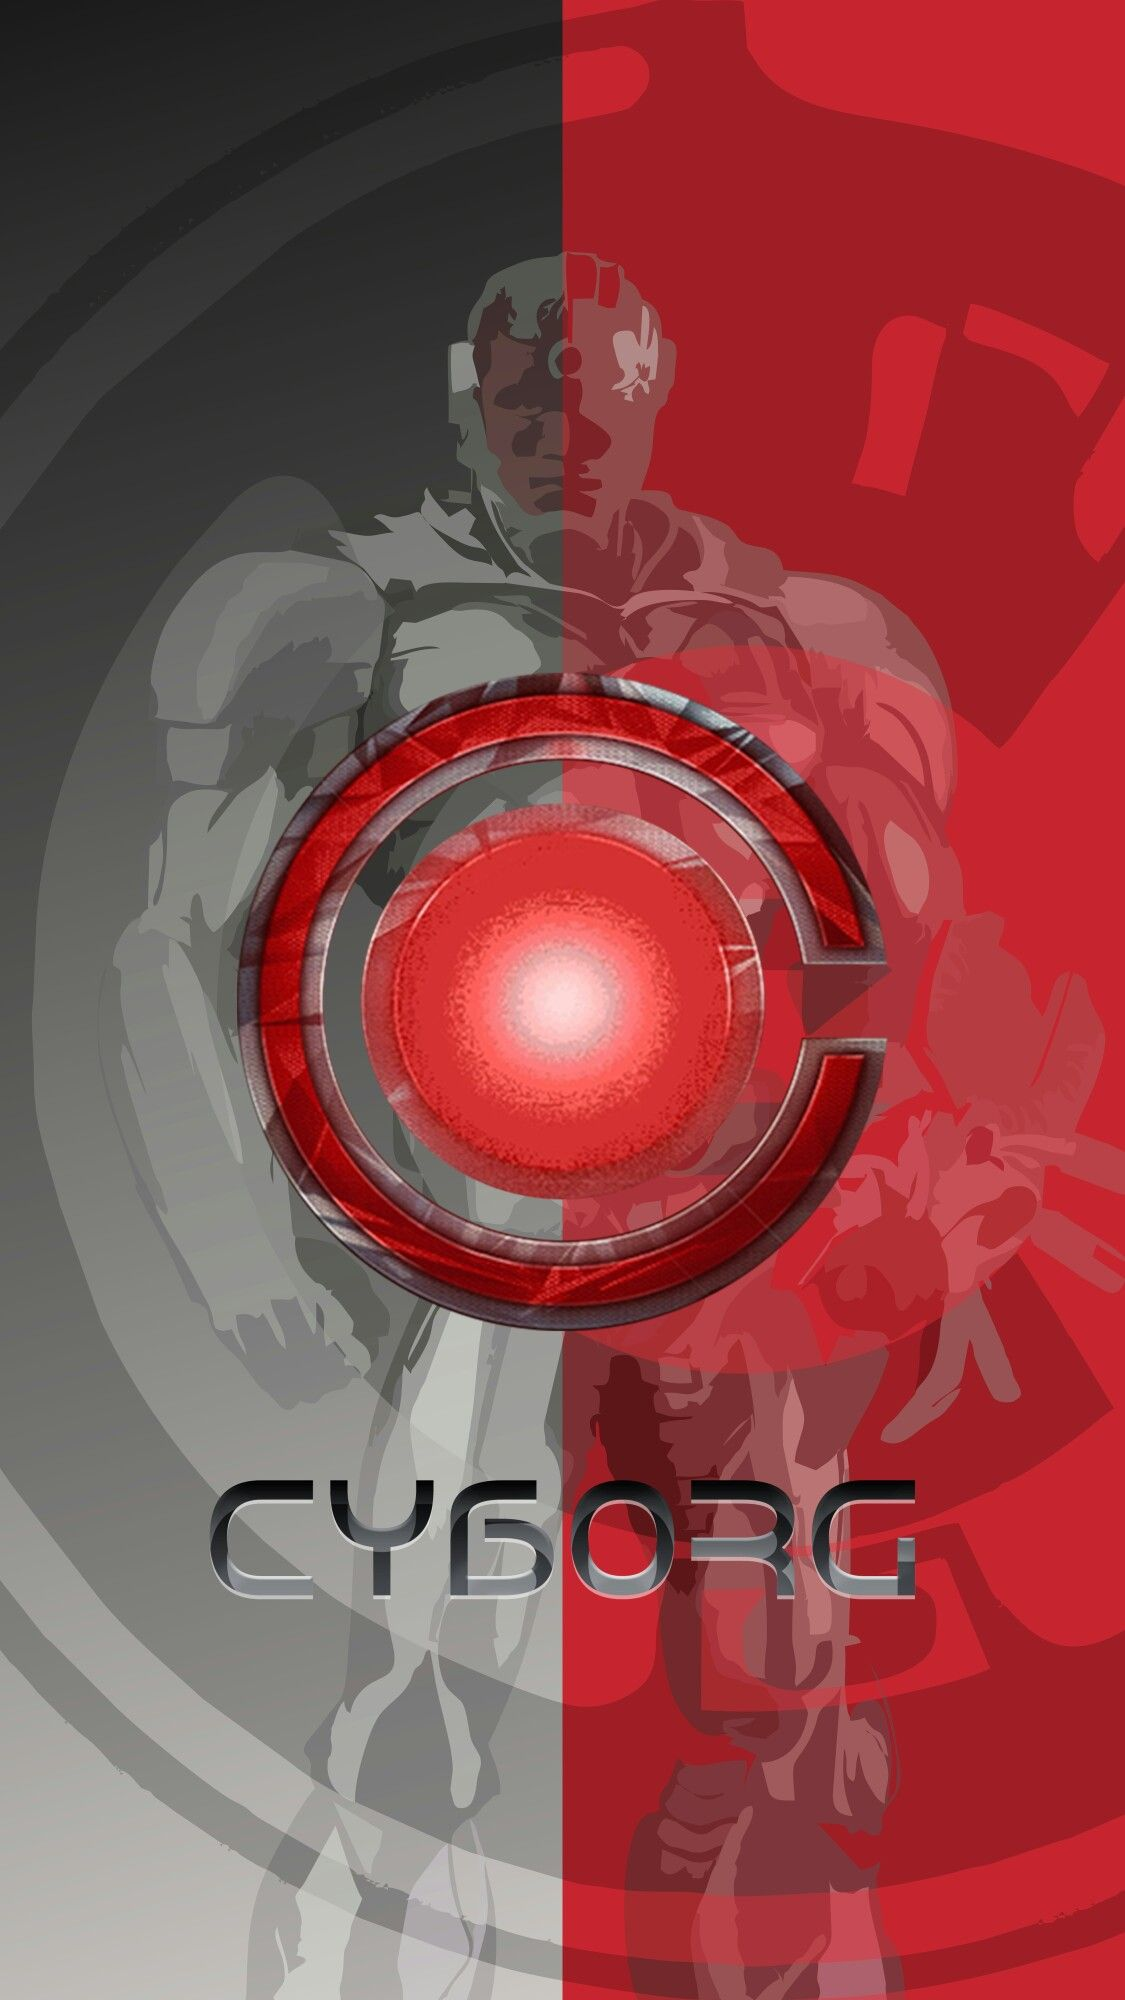 Pin By Lucas Blanchette On Dc Comics Cyborg Cyborg Logo Cool Wallpapers For Phones